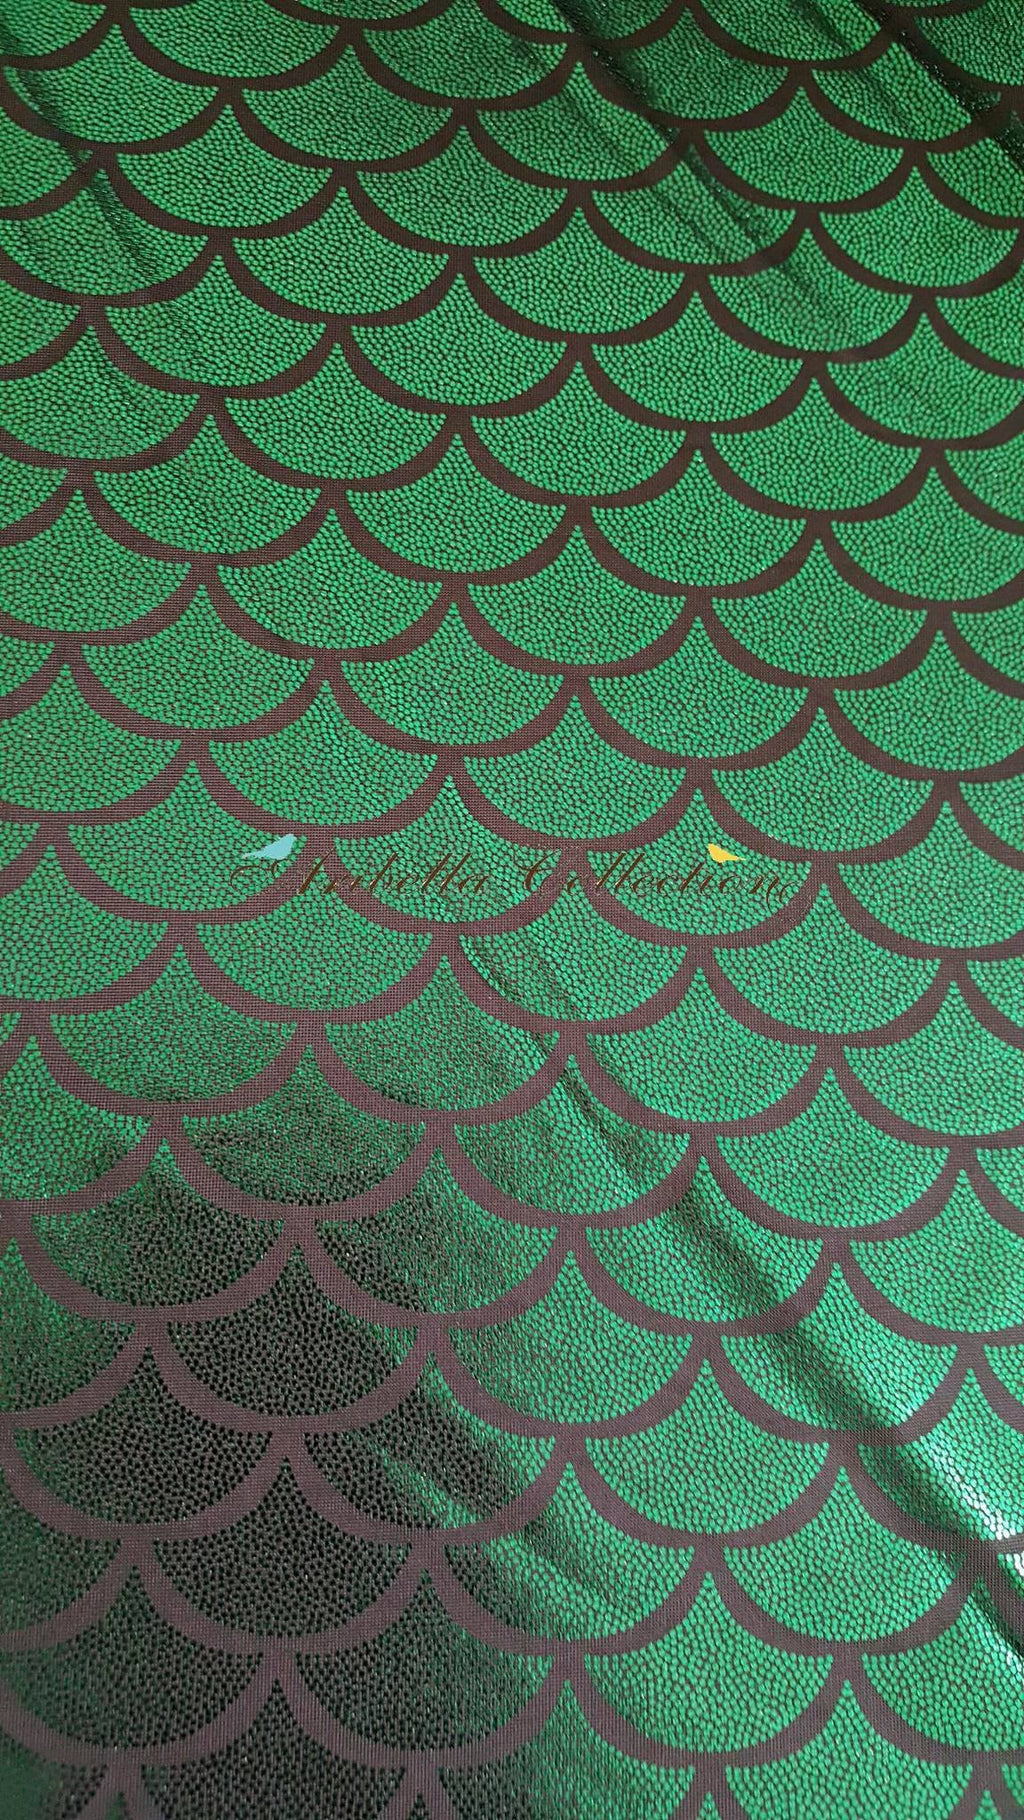 Mermaid Fish Scale Foil Dot Print Fabric By The Yard - 2 Way Stretch - Green or Blue Color - Aribella Collection